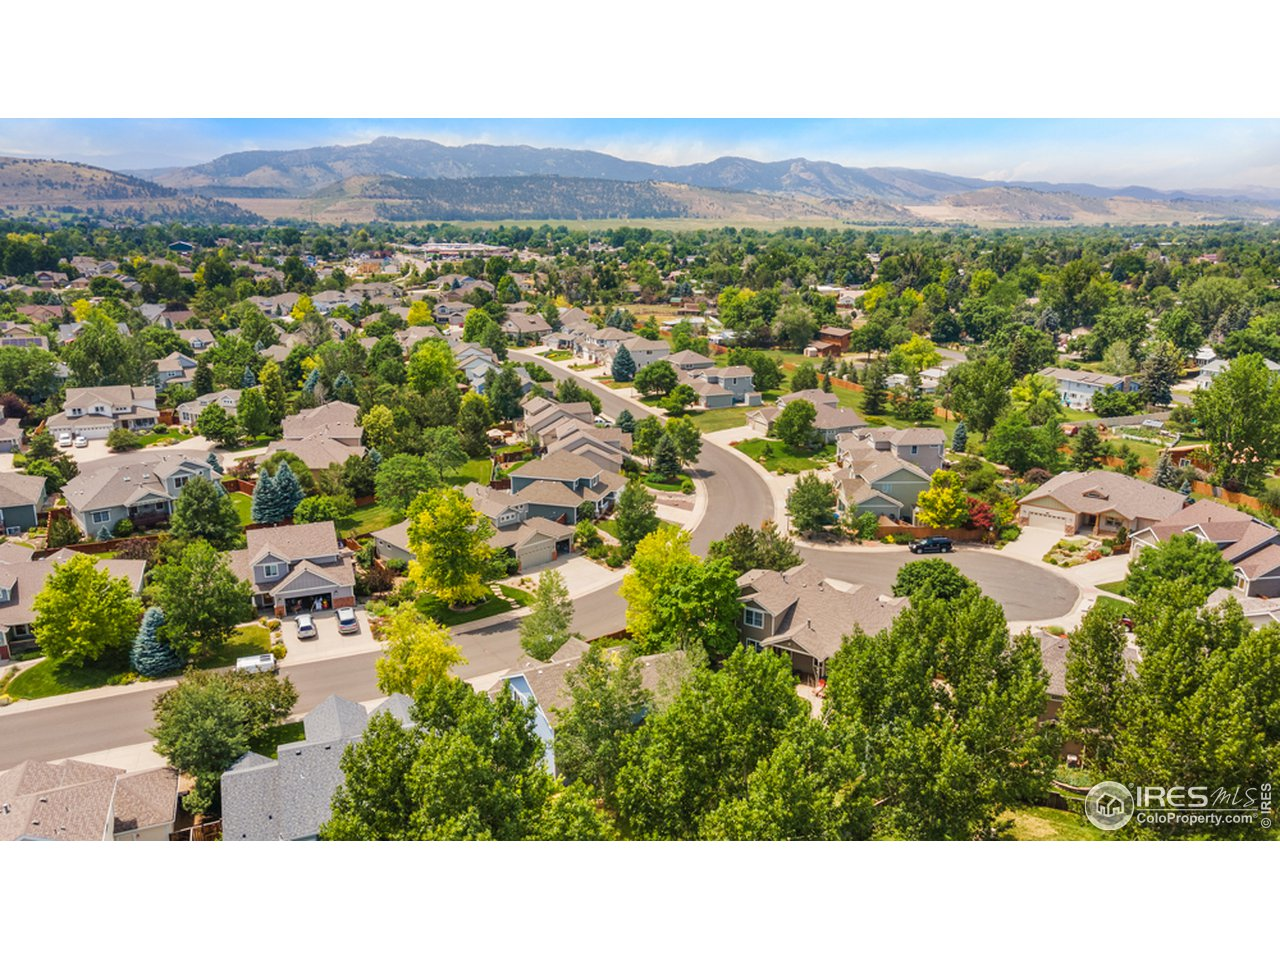 Central location in FOCO and so close to the foothills and reservoir.